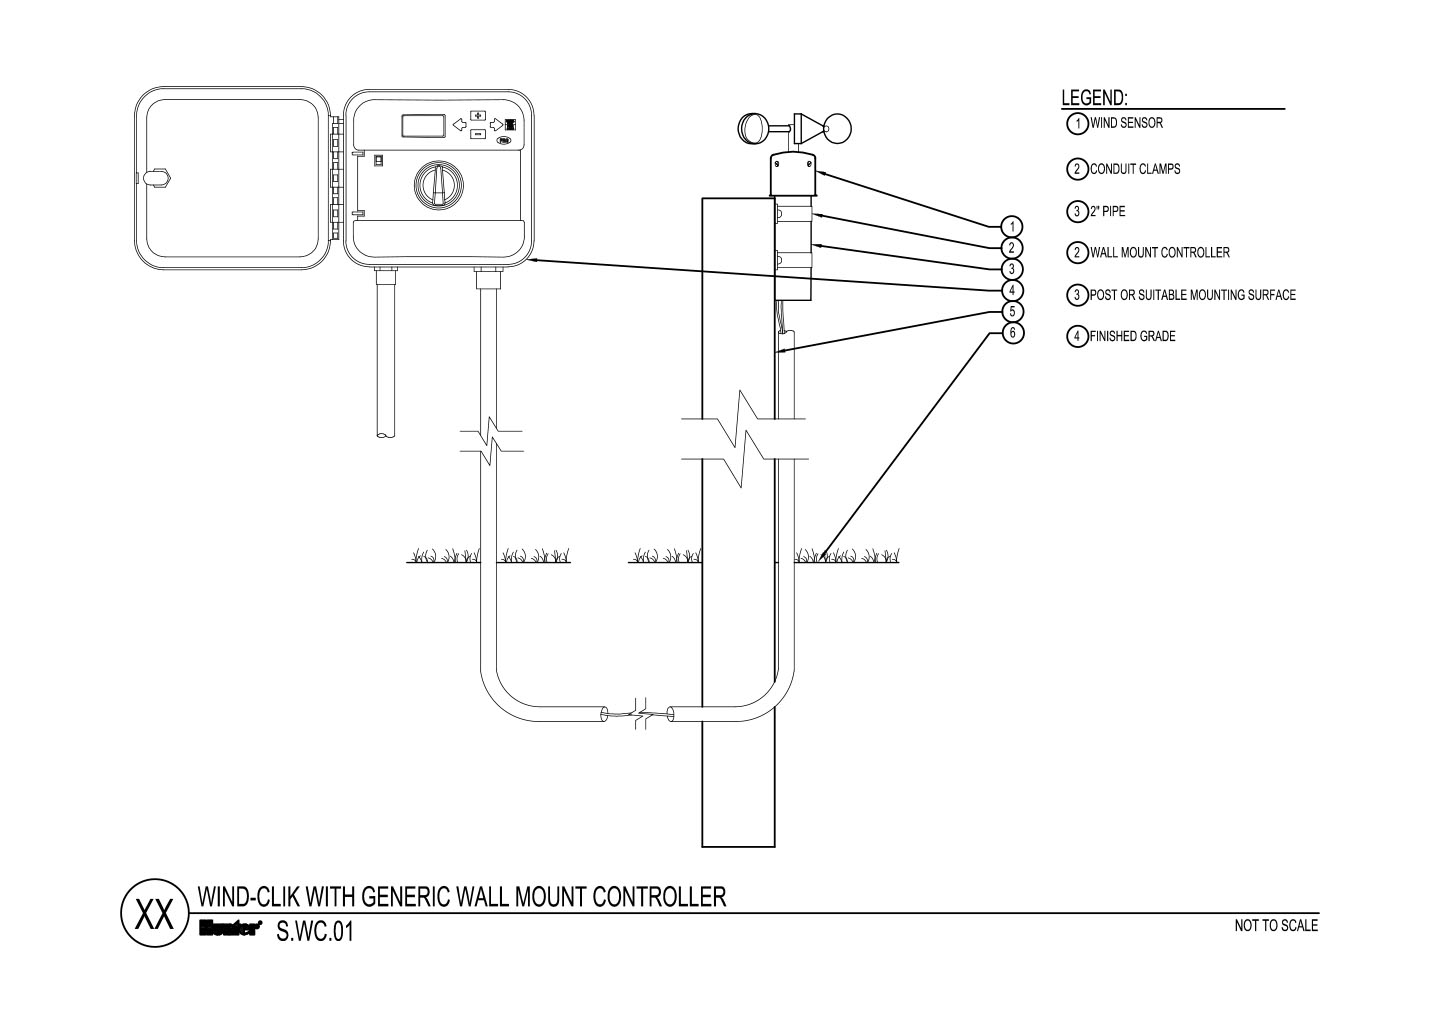 CAD - Wind Clik with Generic Wall Mount Controller